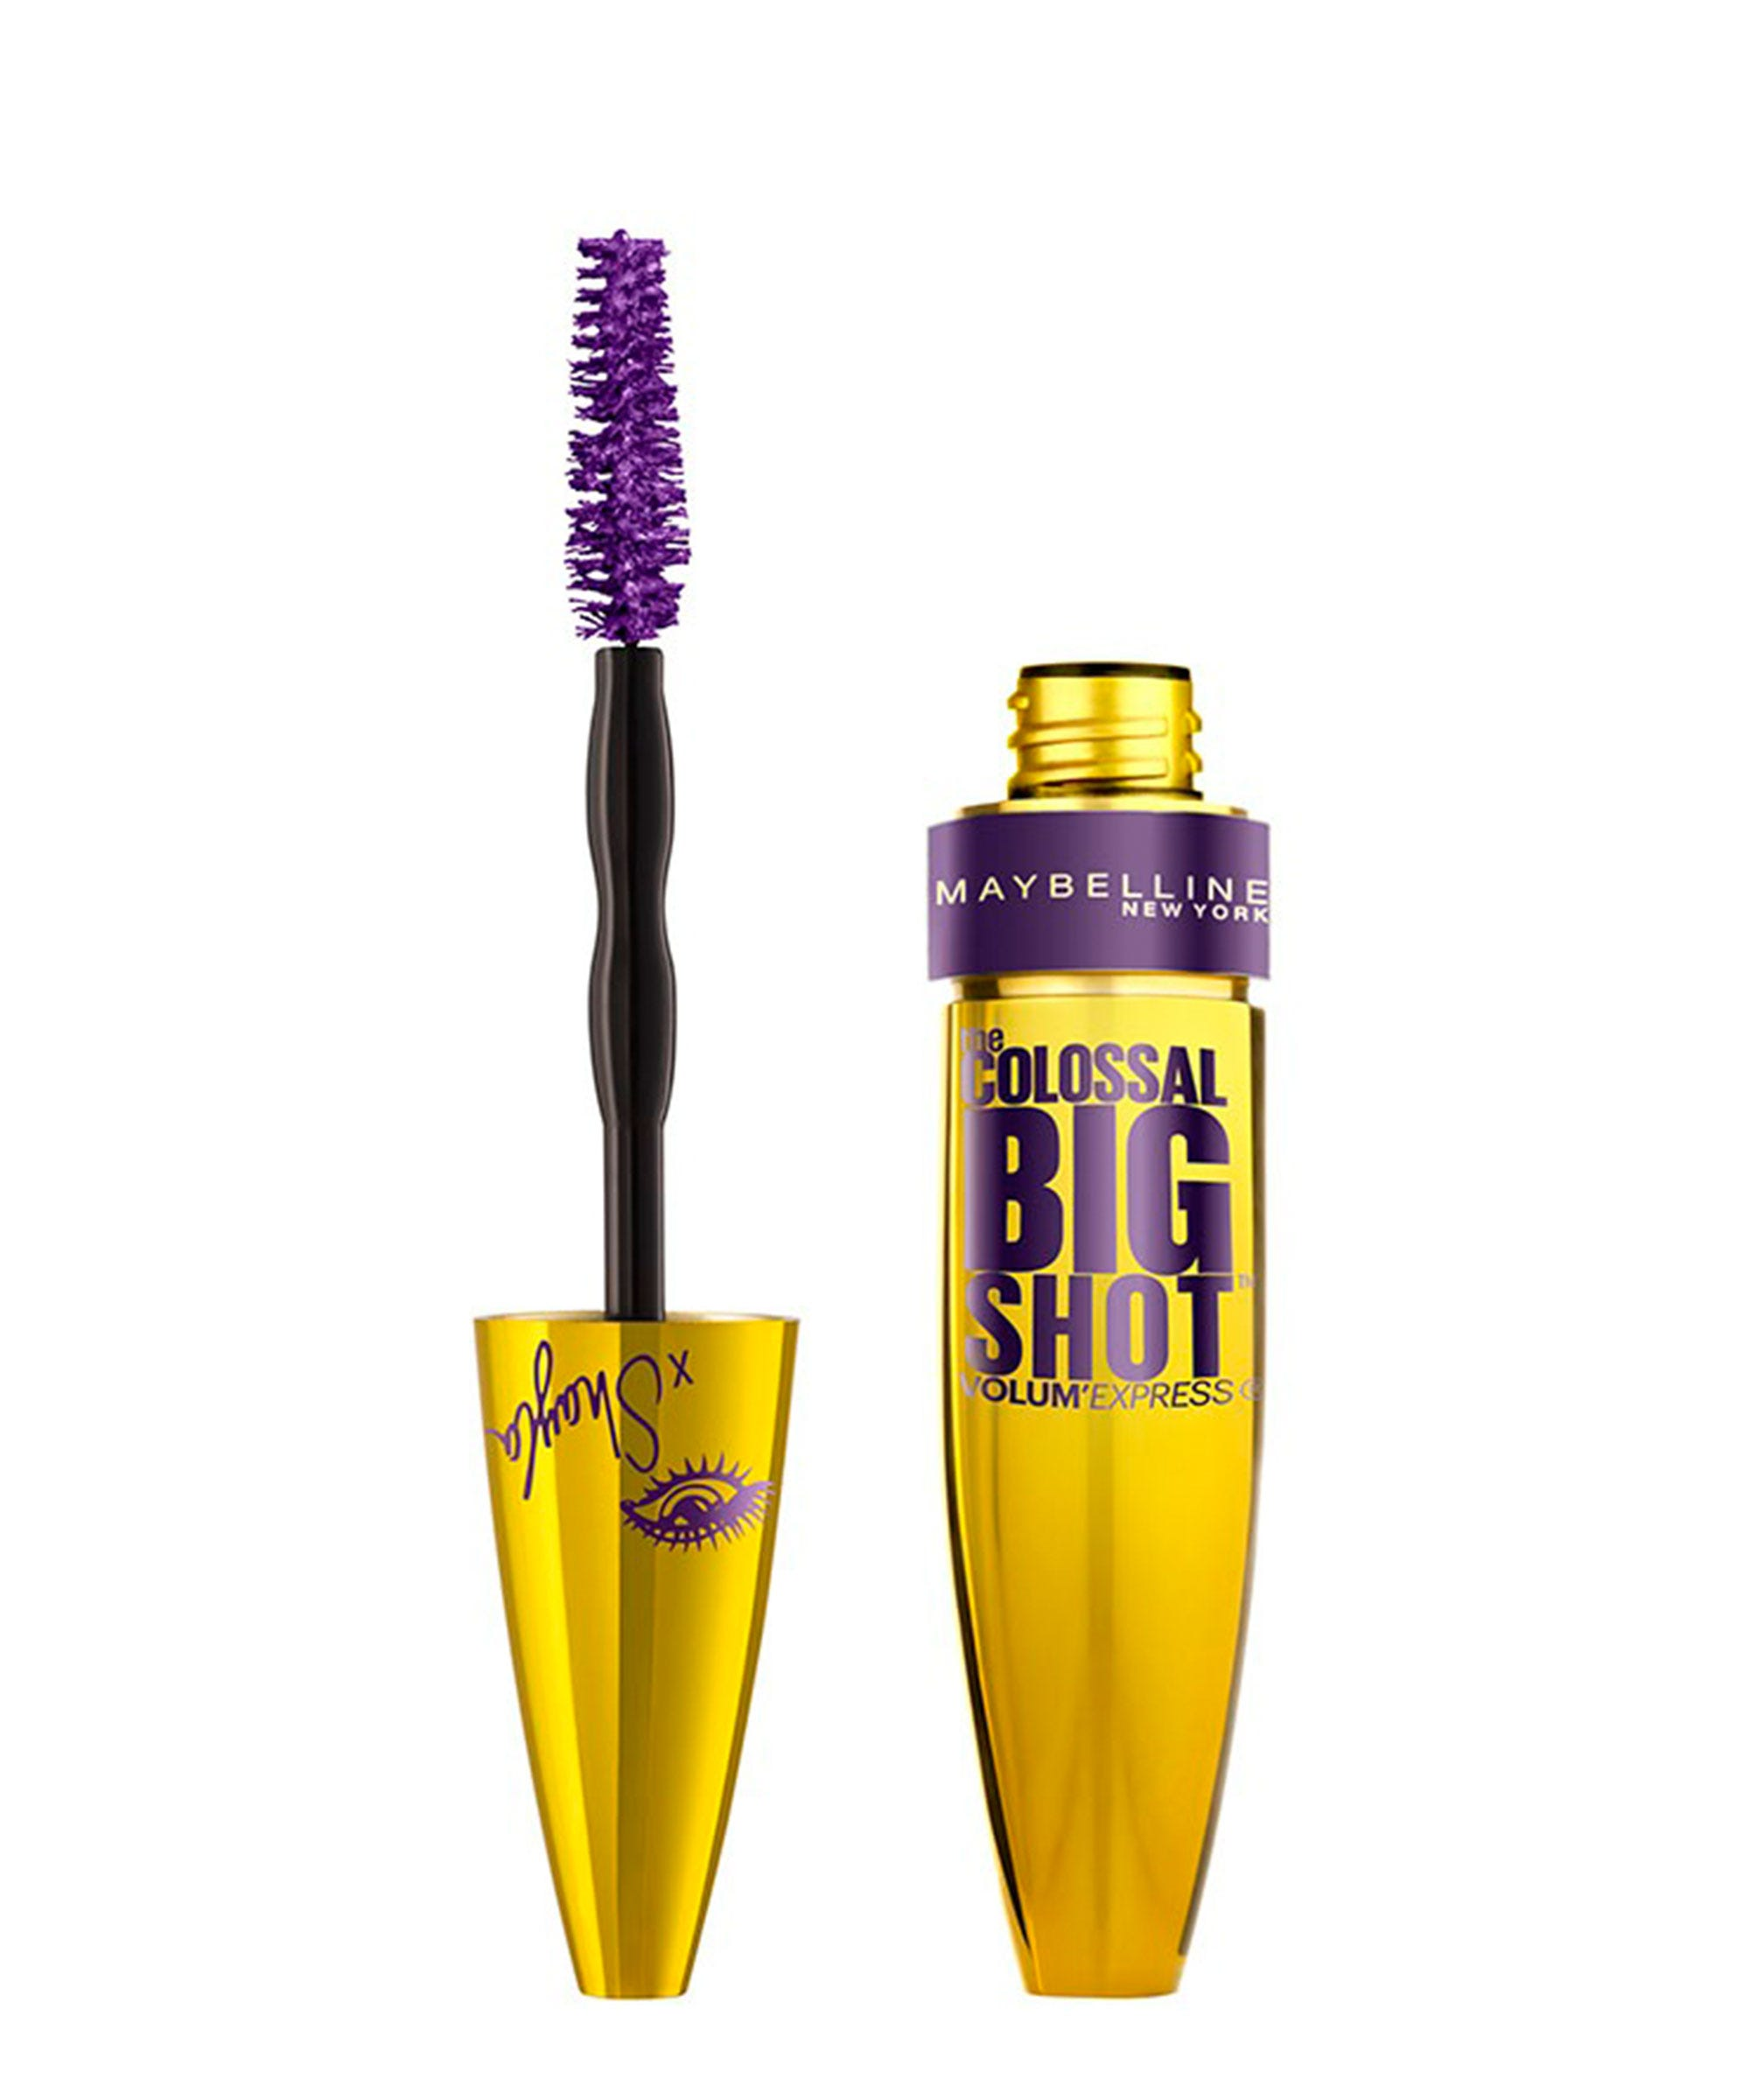 fd378ab4d90 Continuing with the purple theme, Mitchell created a violet version of her  beloved The Colossal Big Shot Mascara.